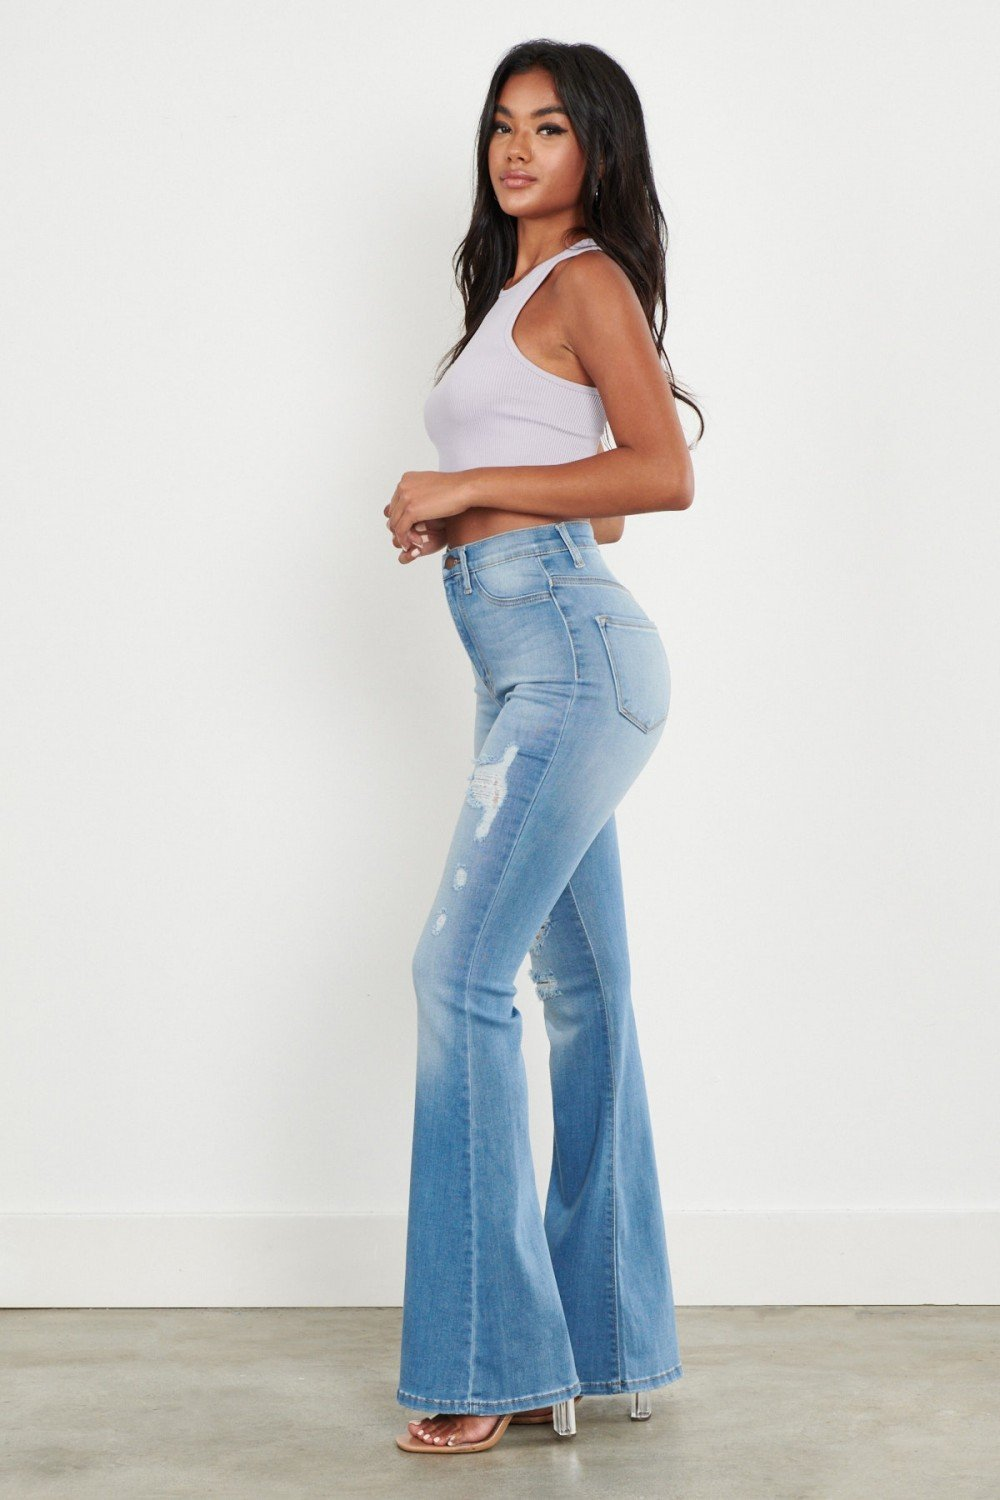 HIGH WAIST FLARE JEANS - Earthy Wares